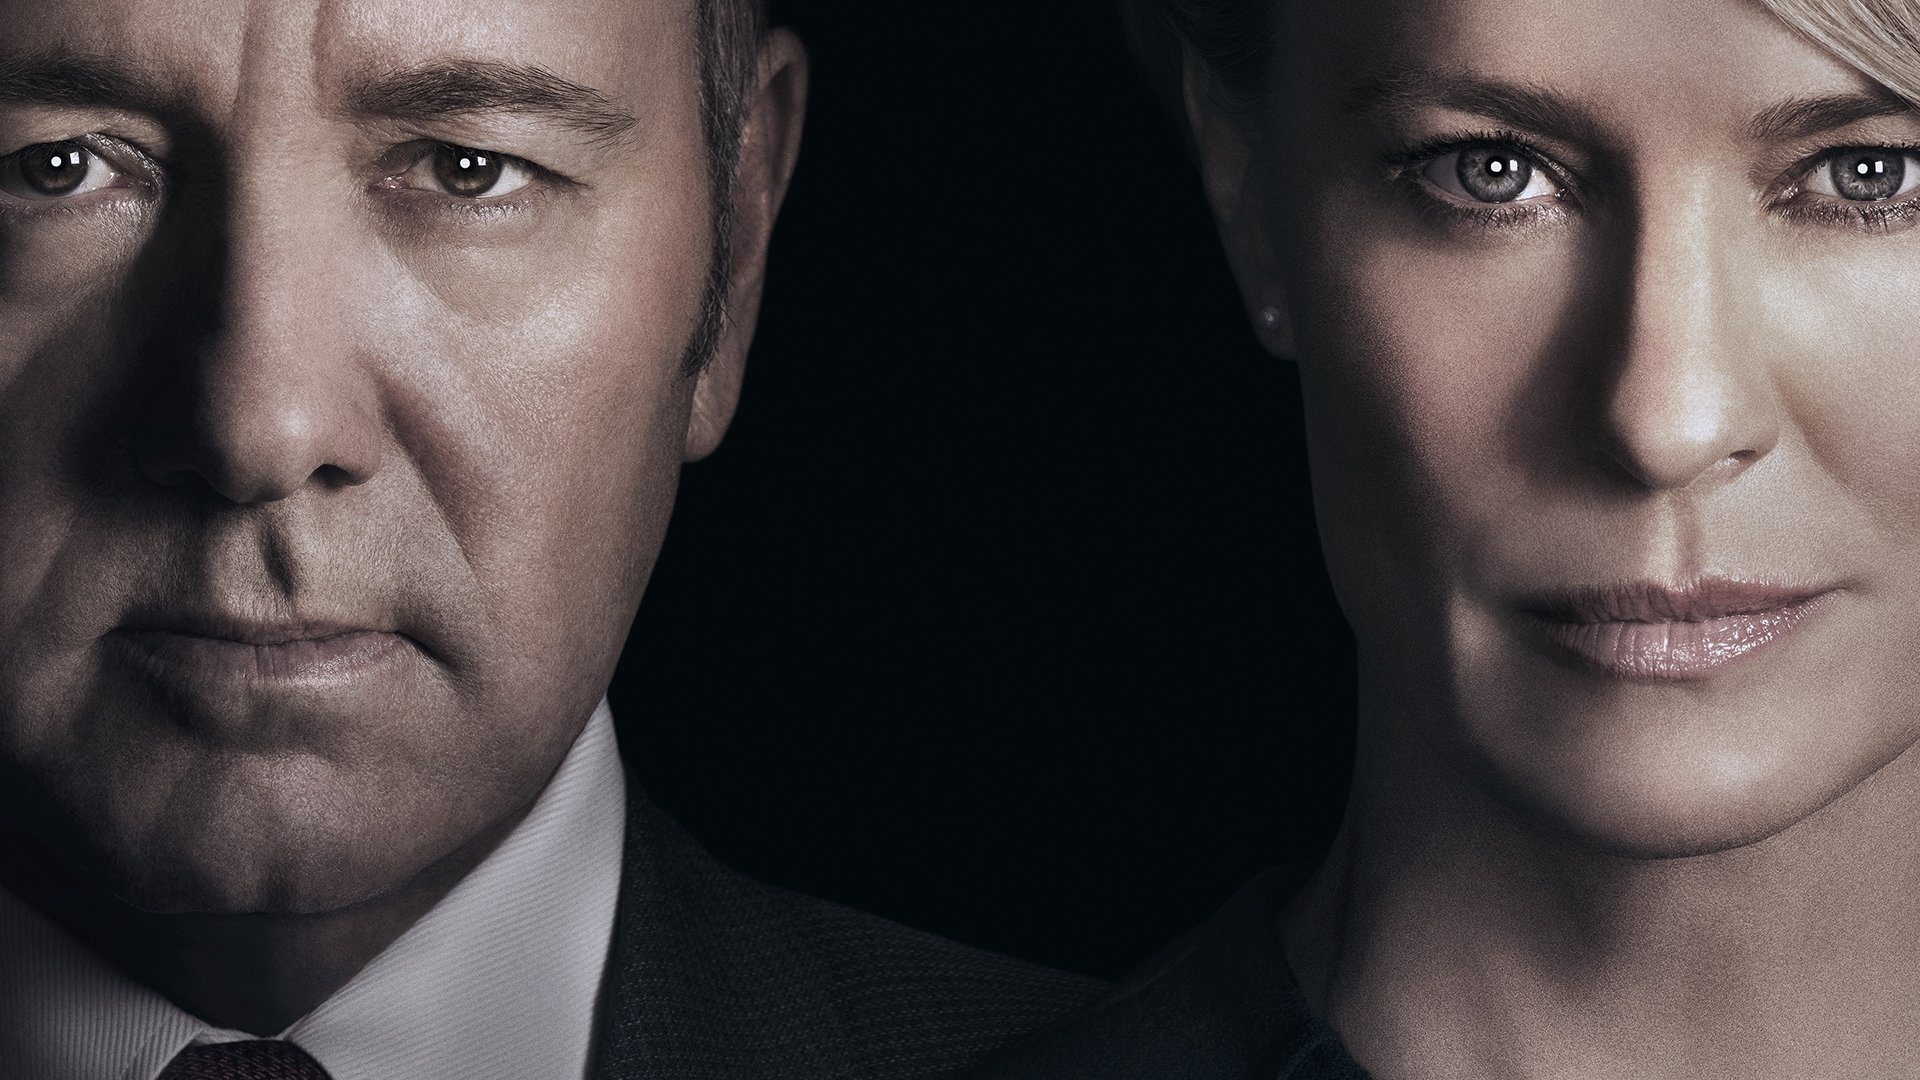 Free House Of Cards high quality wallpaper ID:185605 for 1080p computer